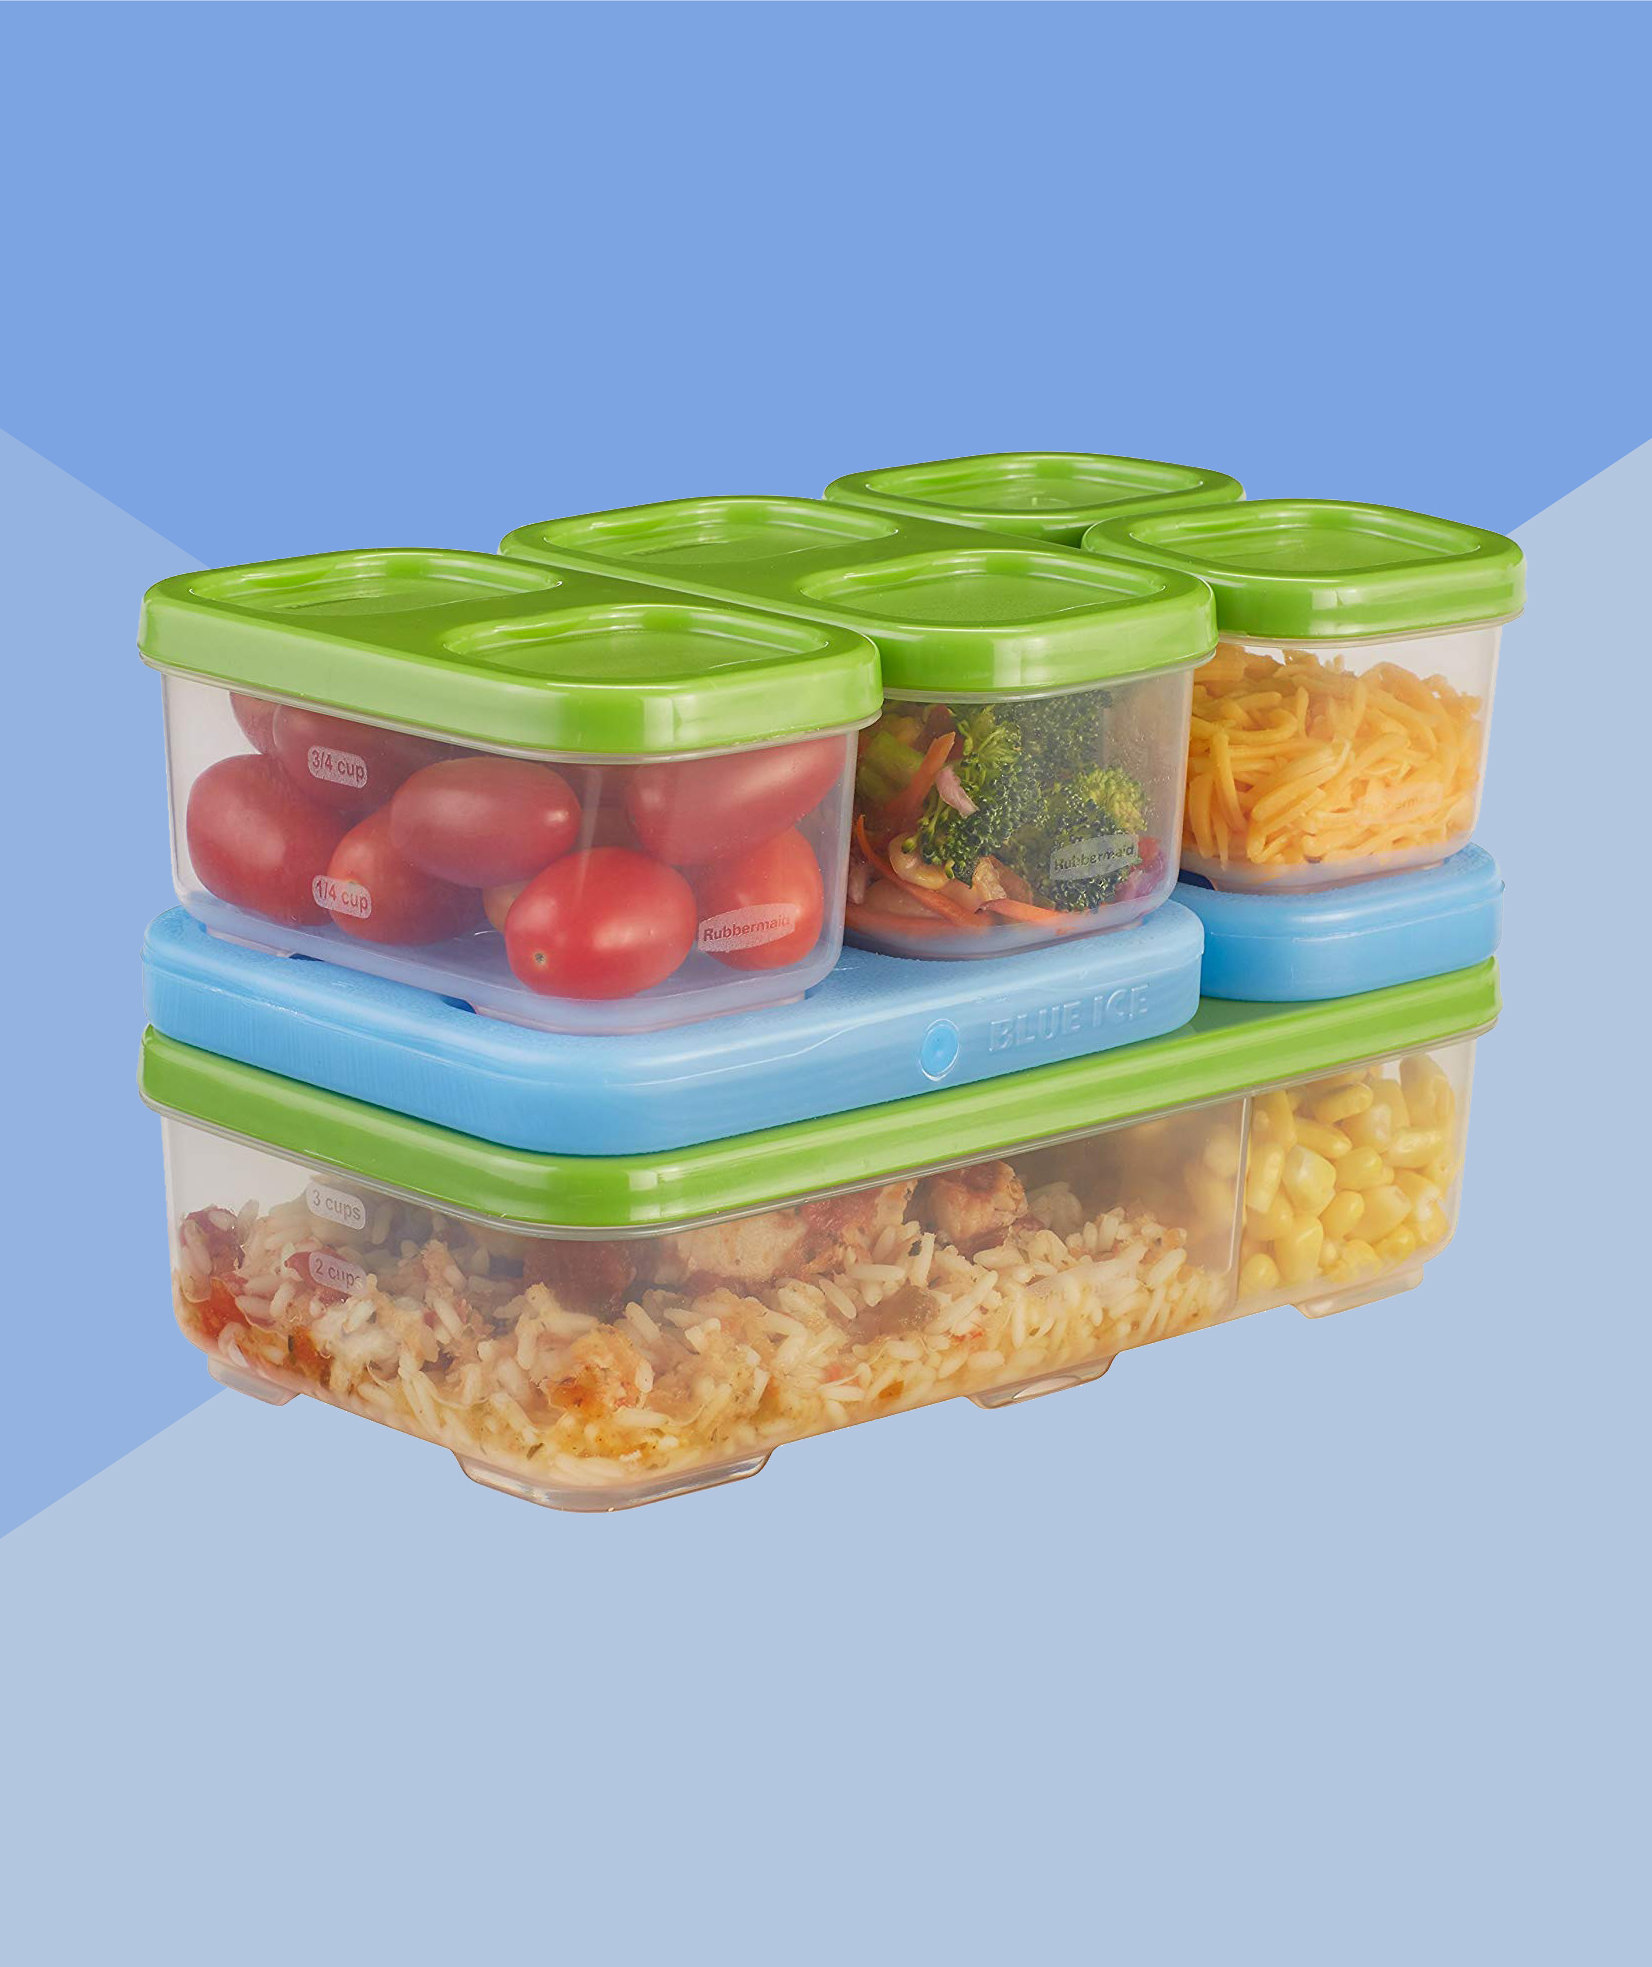 These Genius Containers Keep Your Lunch Organized and Cool for Hours—And They're on Super Sale